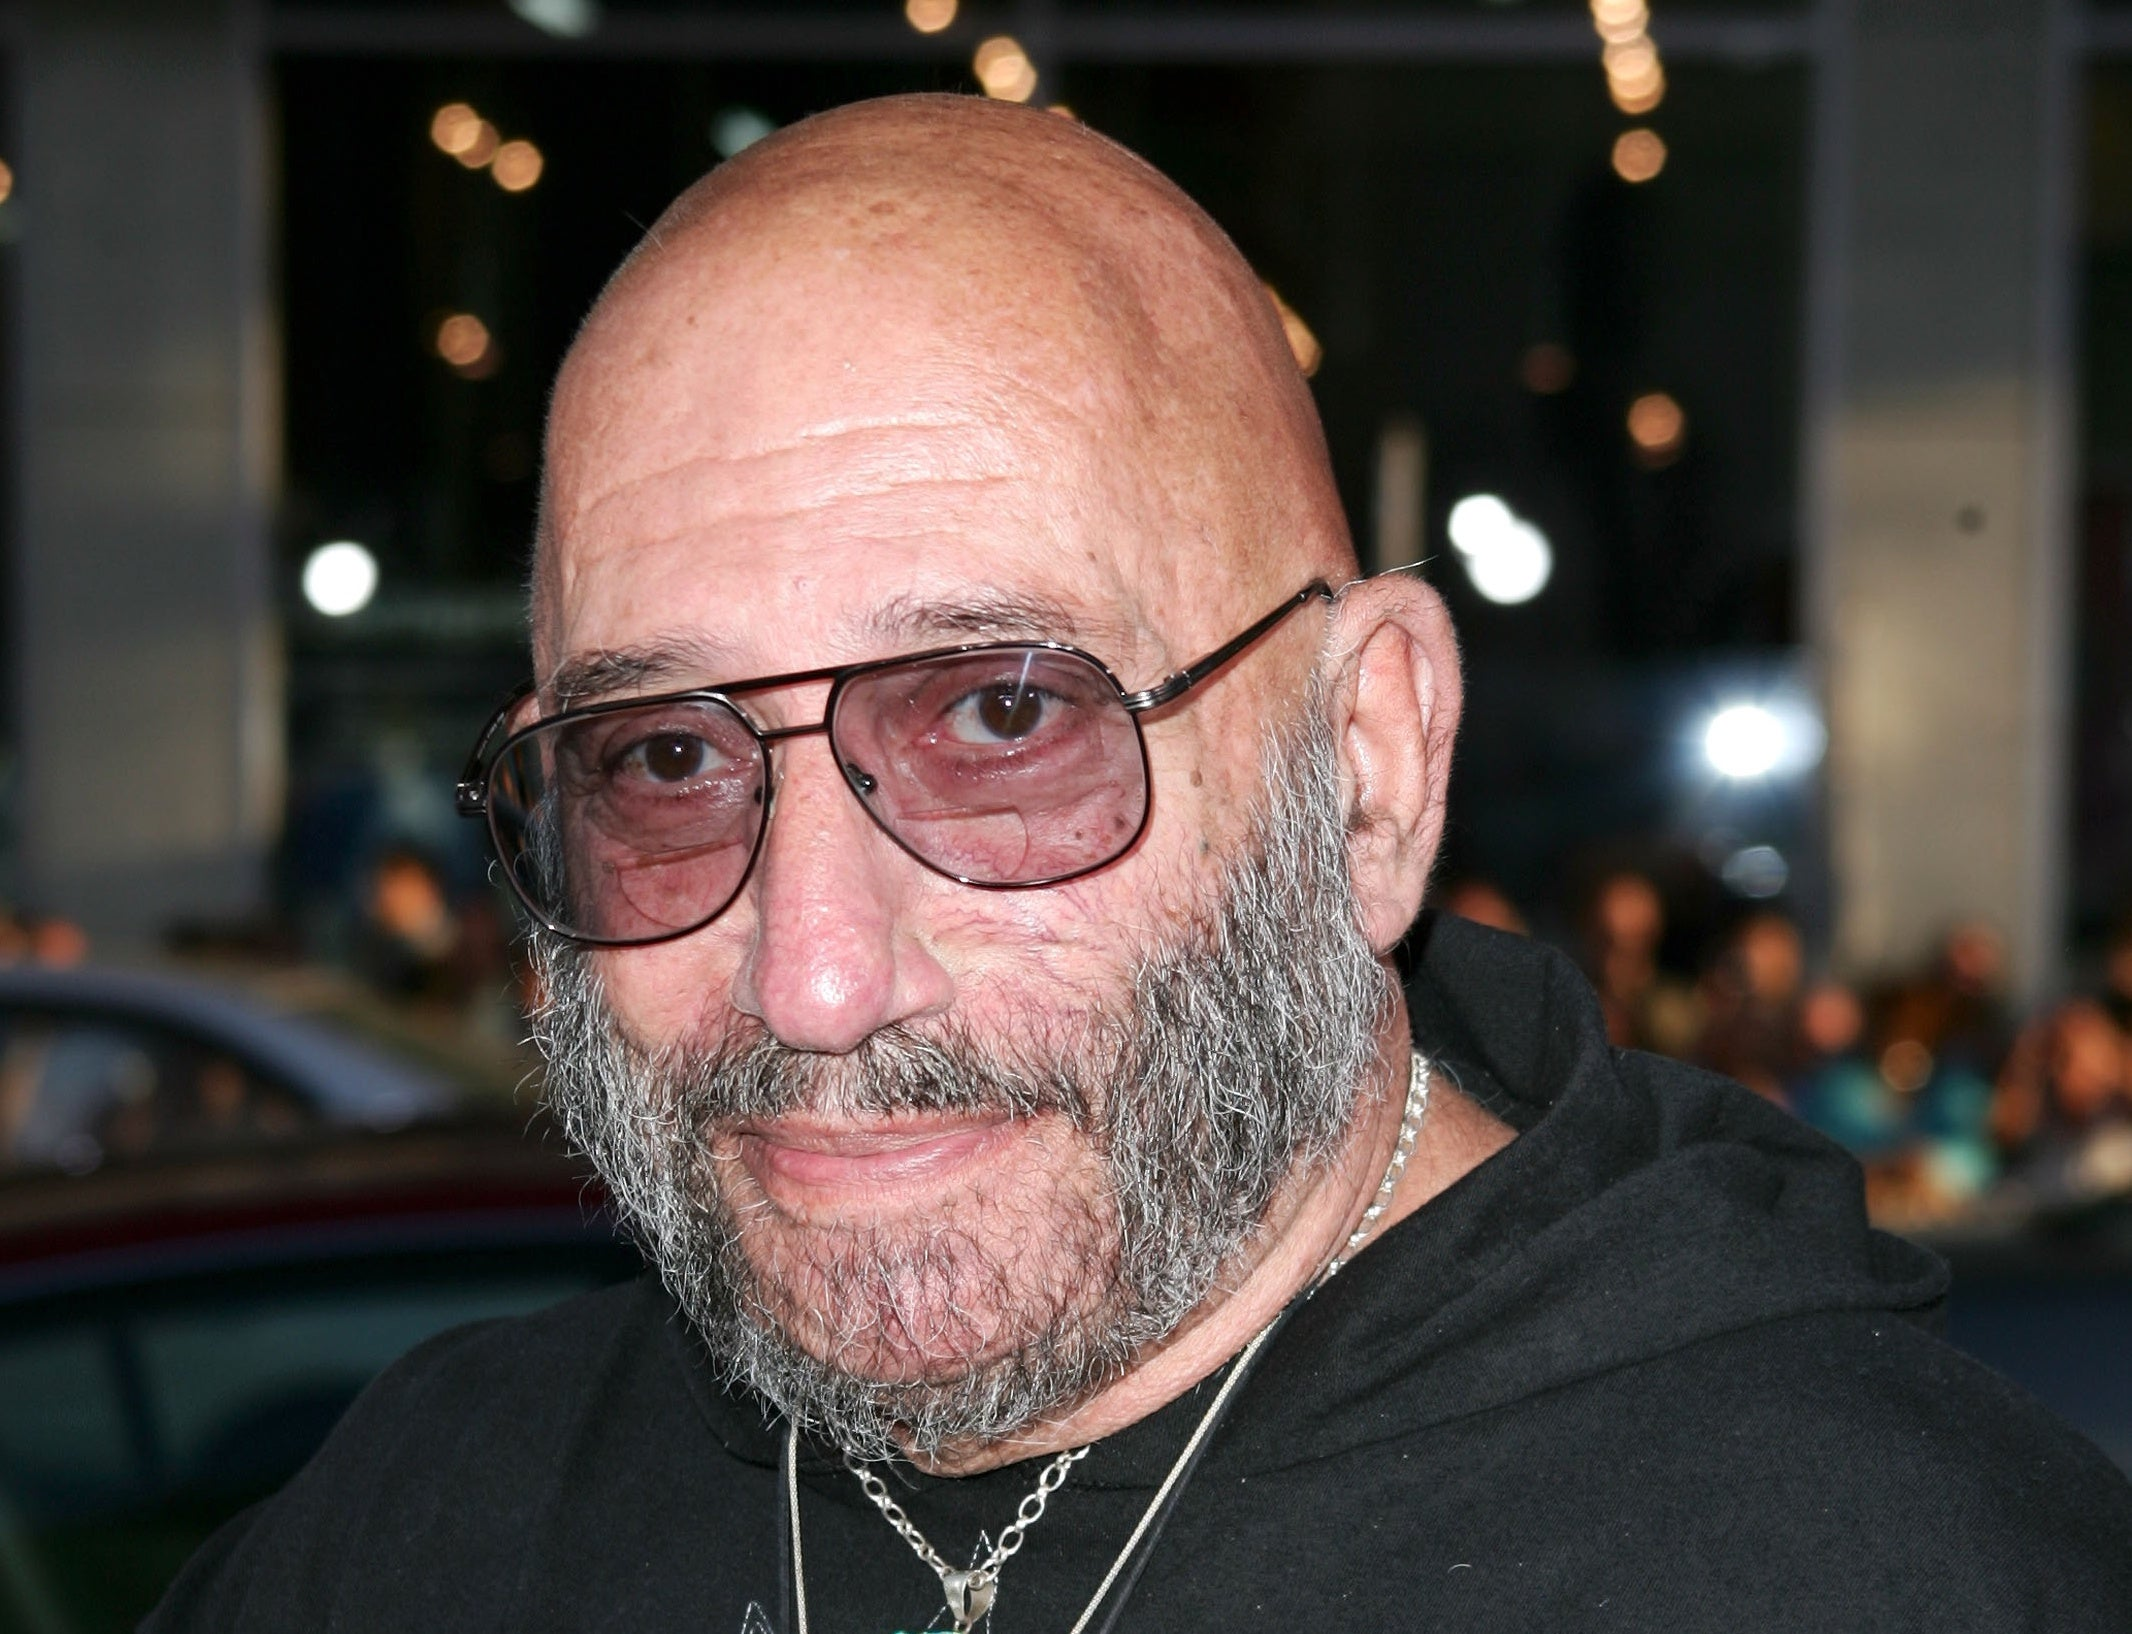 Sid Haig death: Horror actor who starred as Captain Spaulding in Rob Zombie films dies aged 80